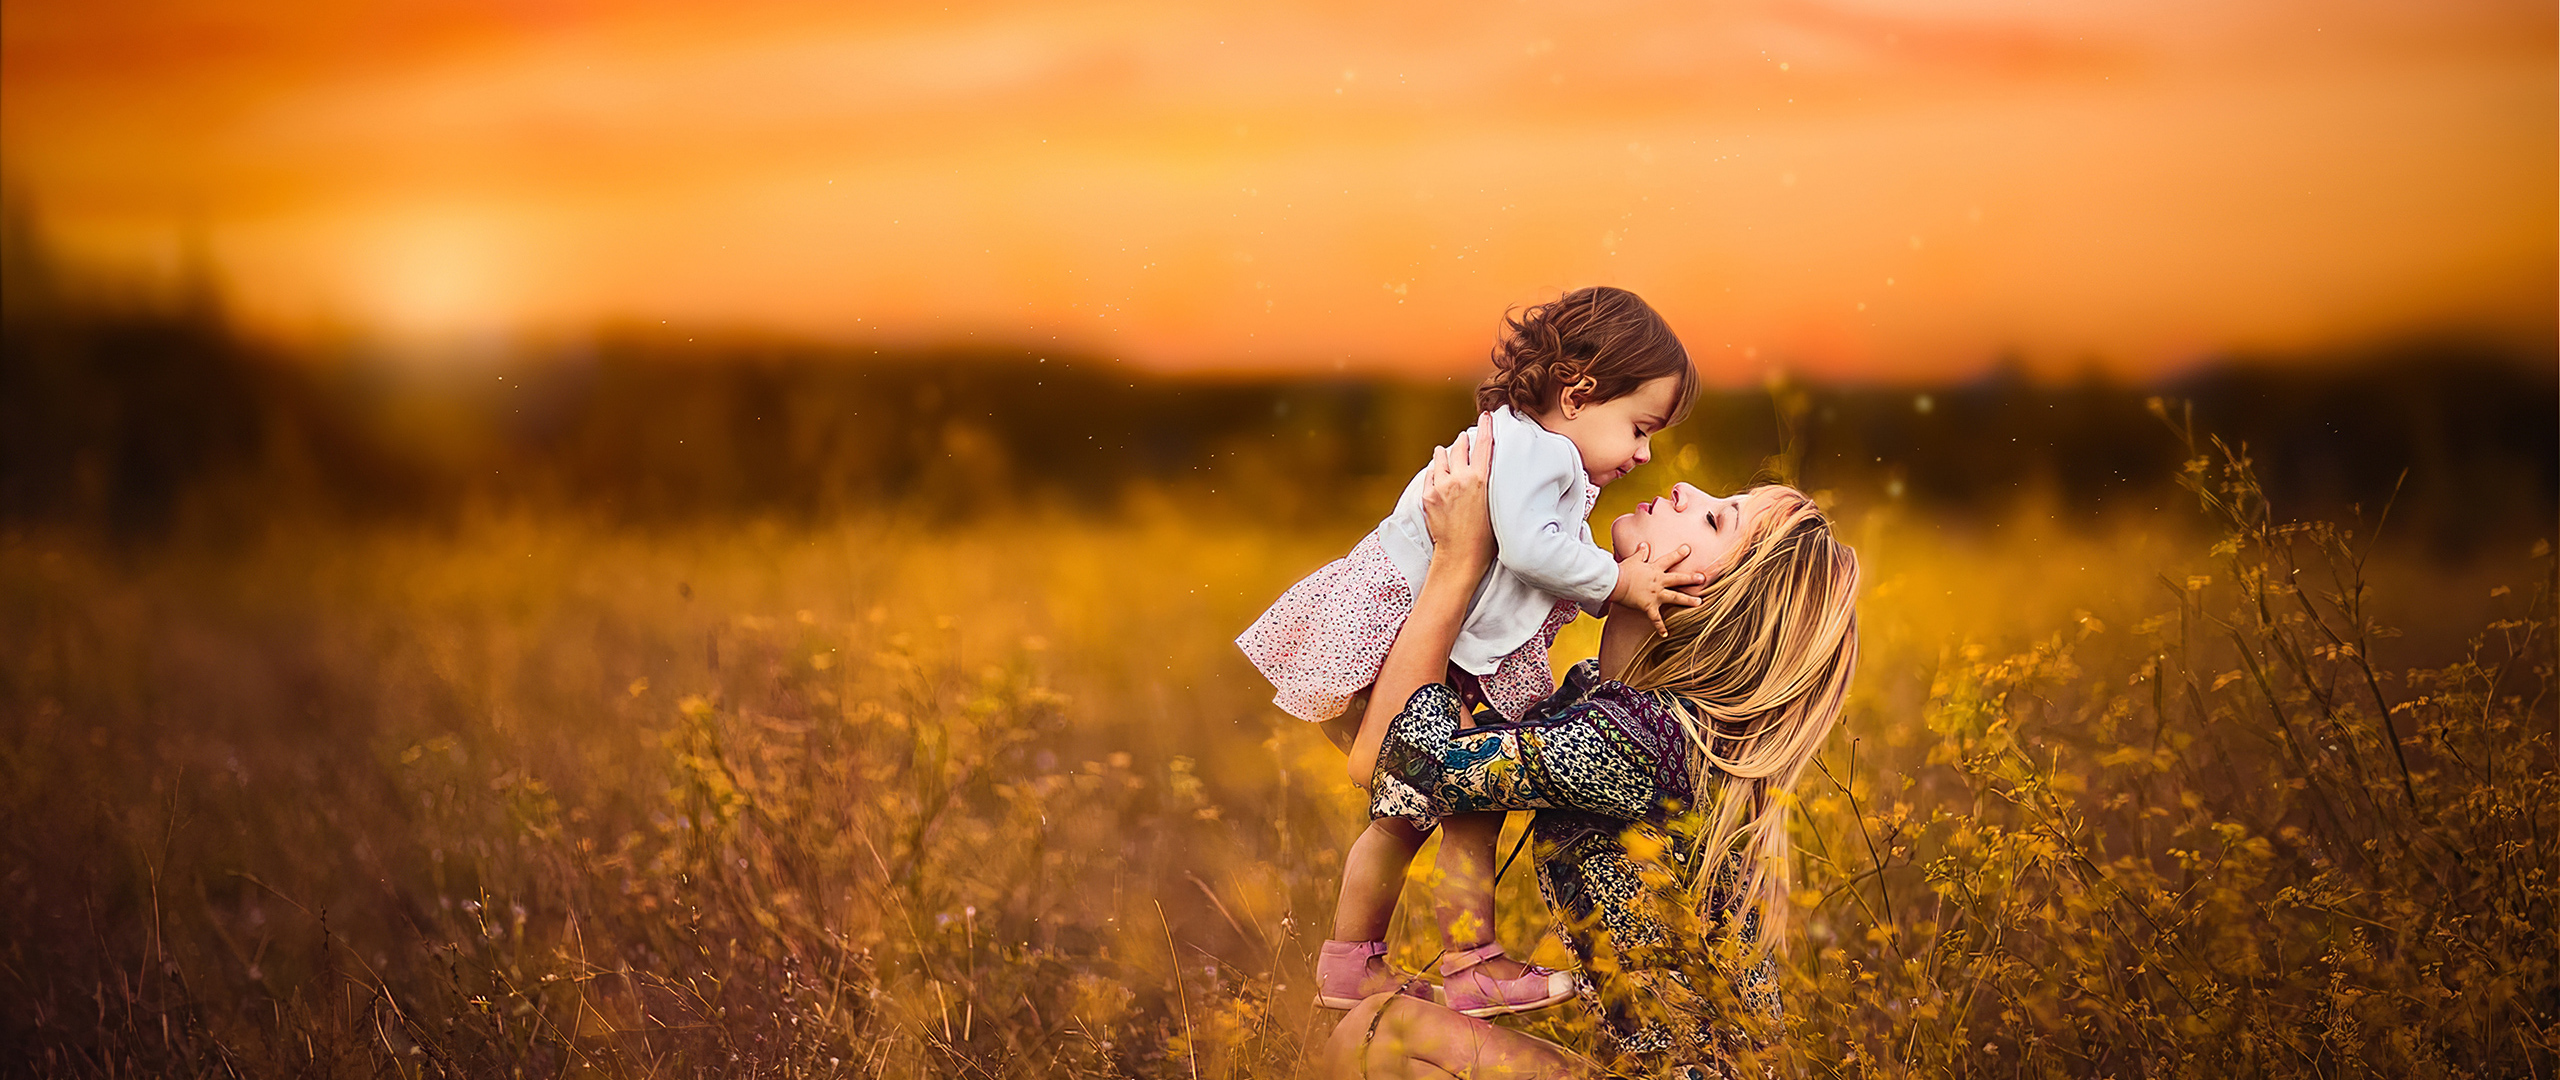 mom-with-little-daughter-o7.jpg